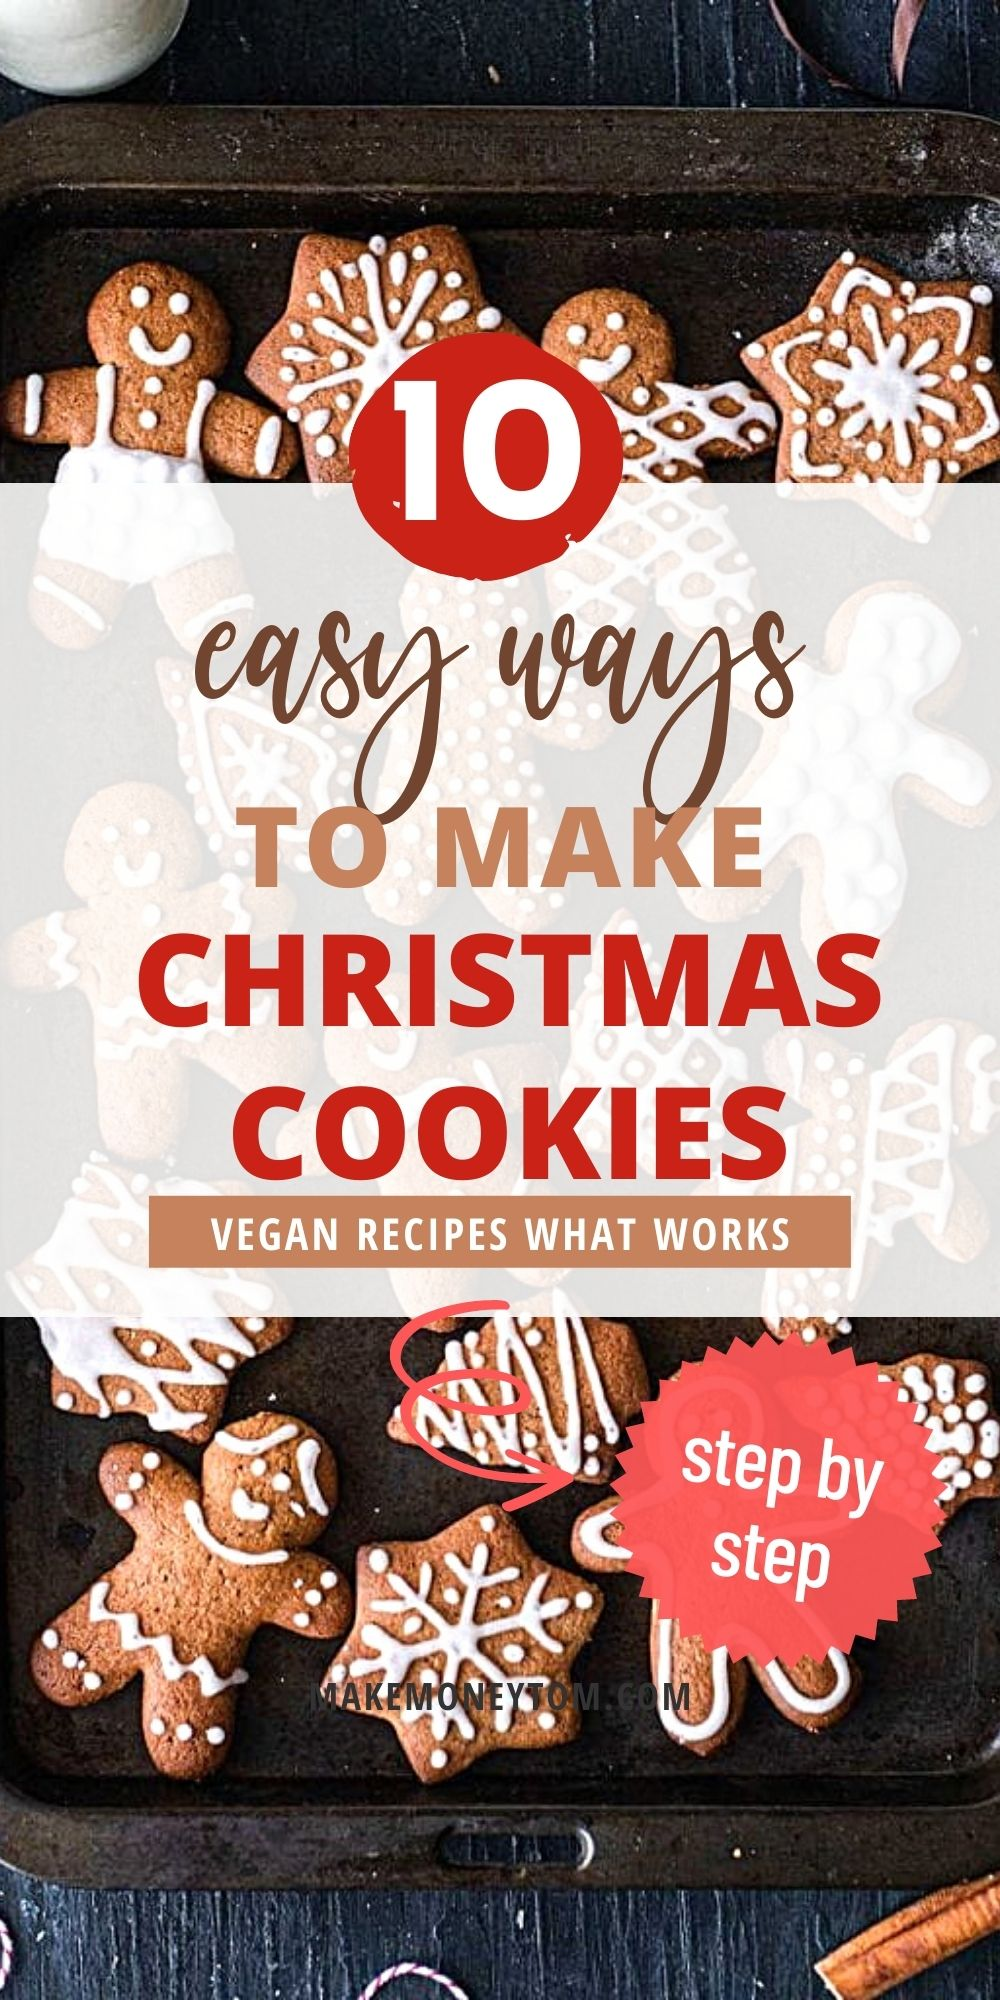 Healthy and Vegan Christmas Cookies Recipes